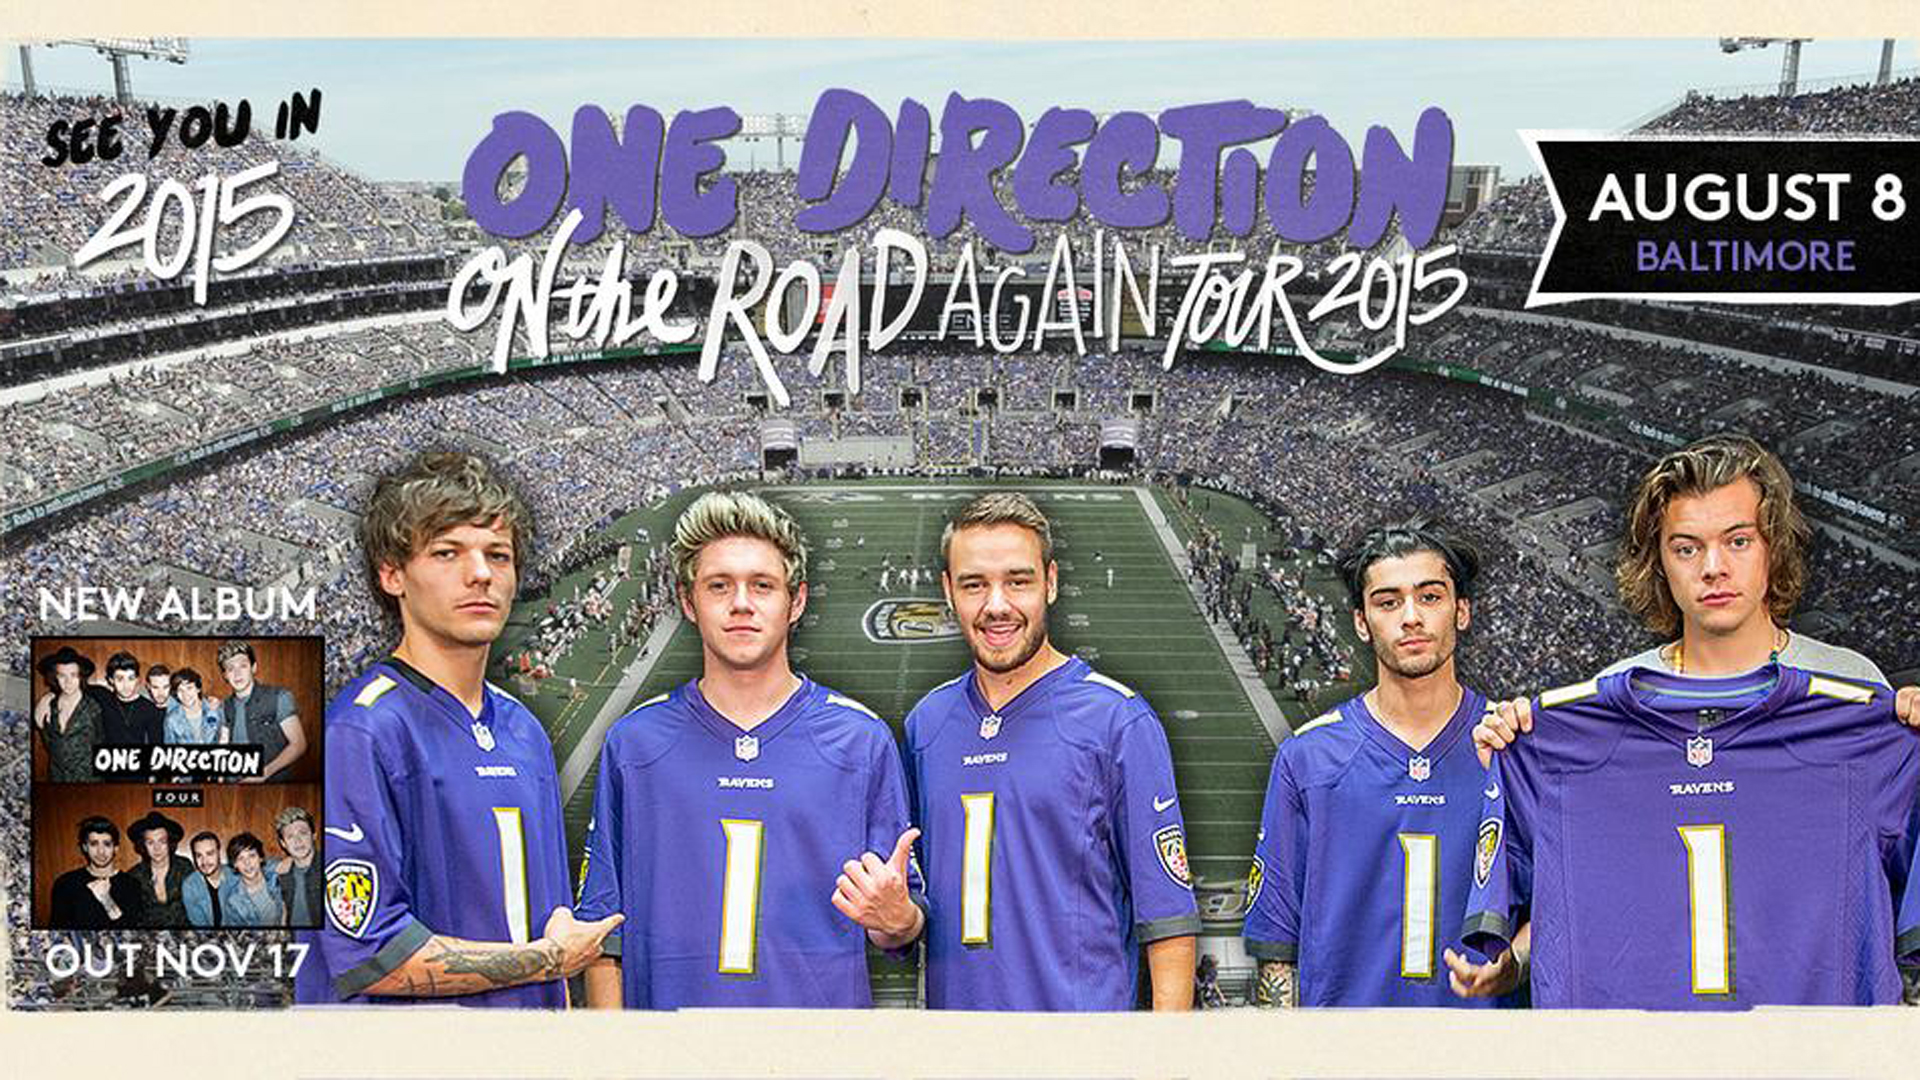 one-direction-sports-102314-twitter-ftr